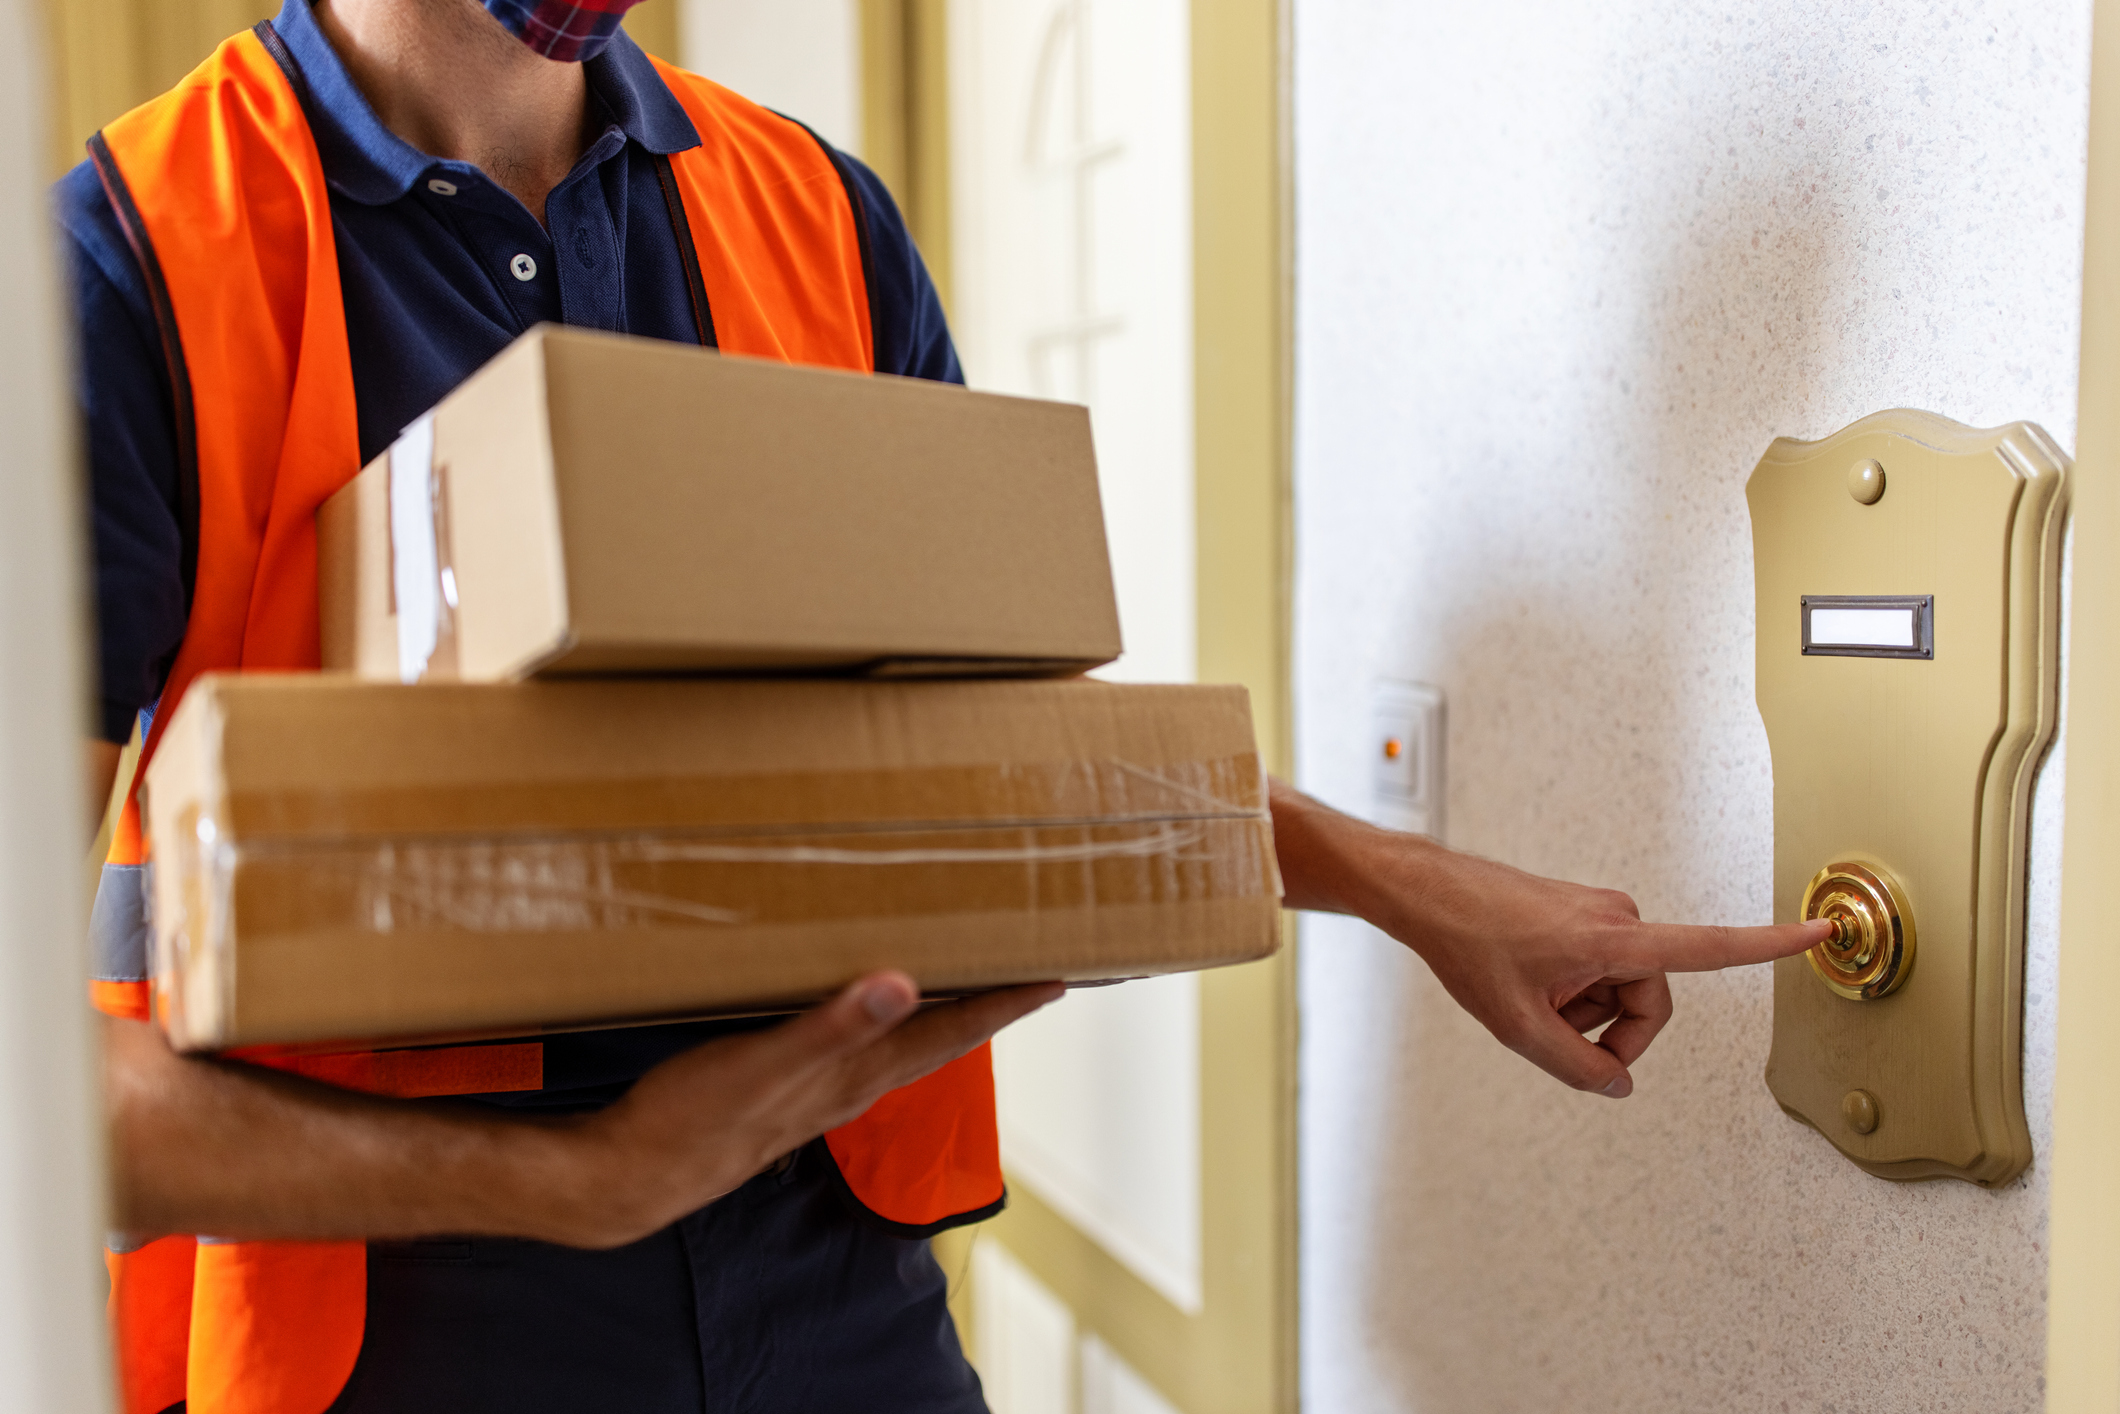 Cropped shot of a male courier delivery person holding parcel boxes and ringing doorbell. Postal worker doing a home delivery of parcel.